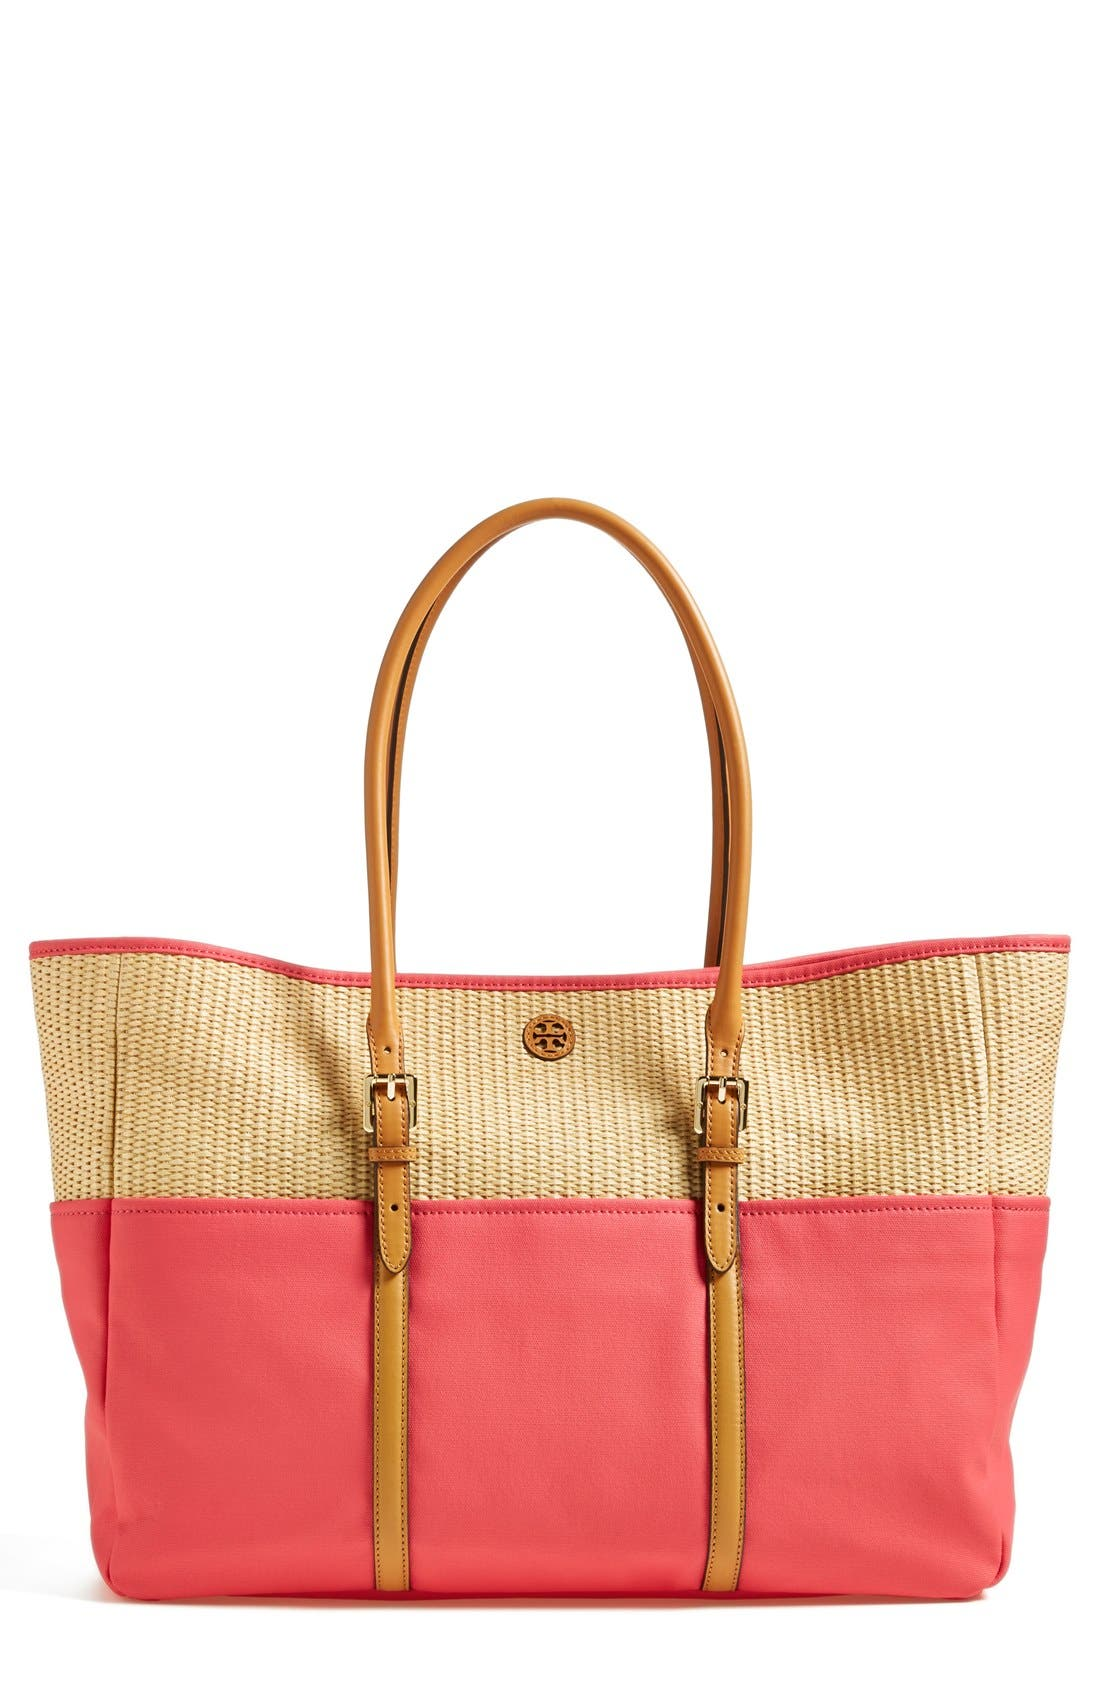 Alternate Image 1 Selected - Tory Burch 'Lydia' Tote